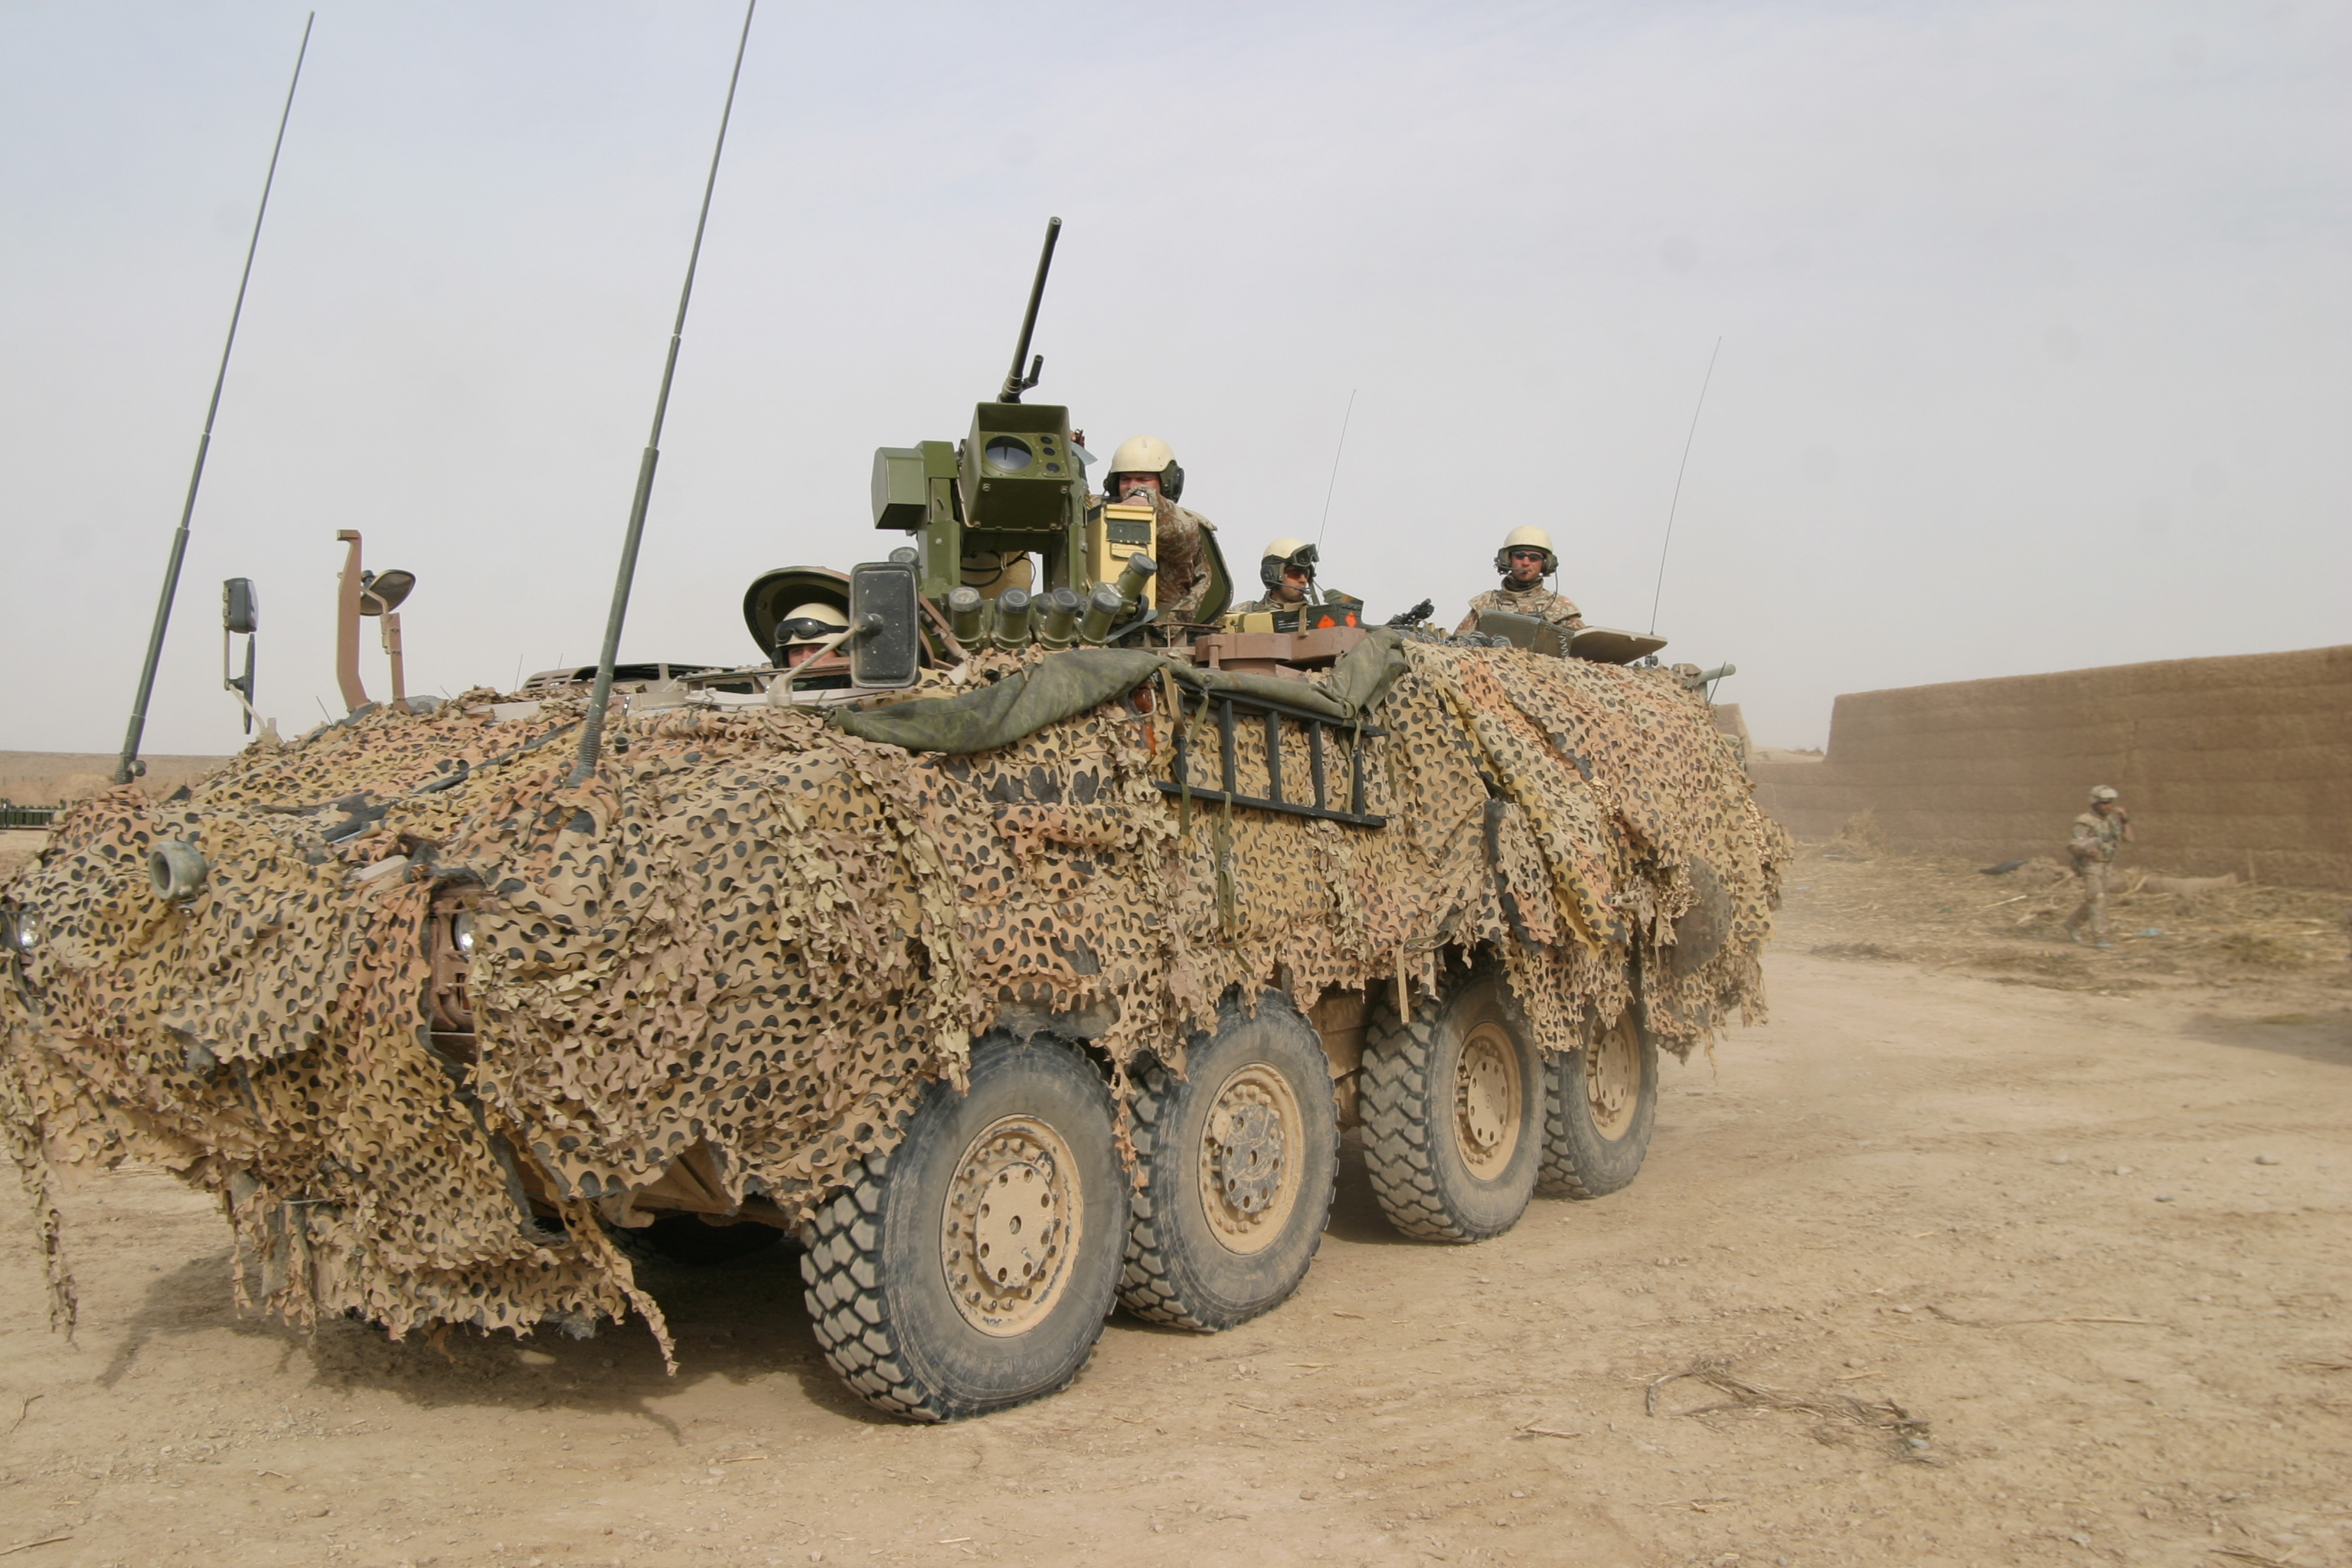 Piranha in the Sandford camp. The heavy artillery often served as backup for the soldiers patrolling on foot. Photo: HOK, 2008